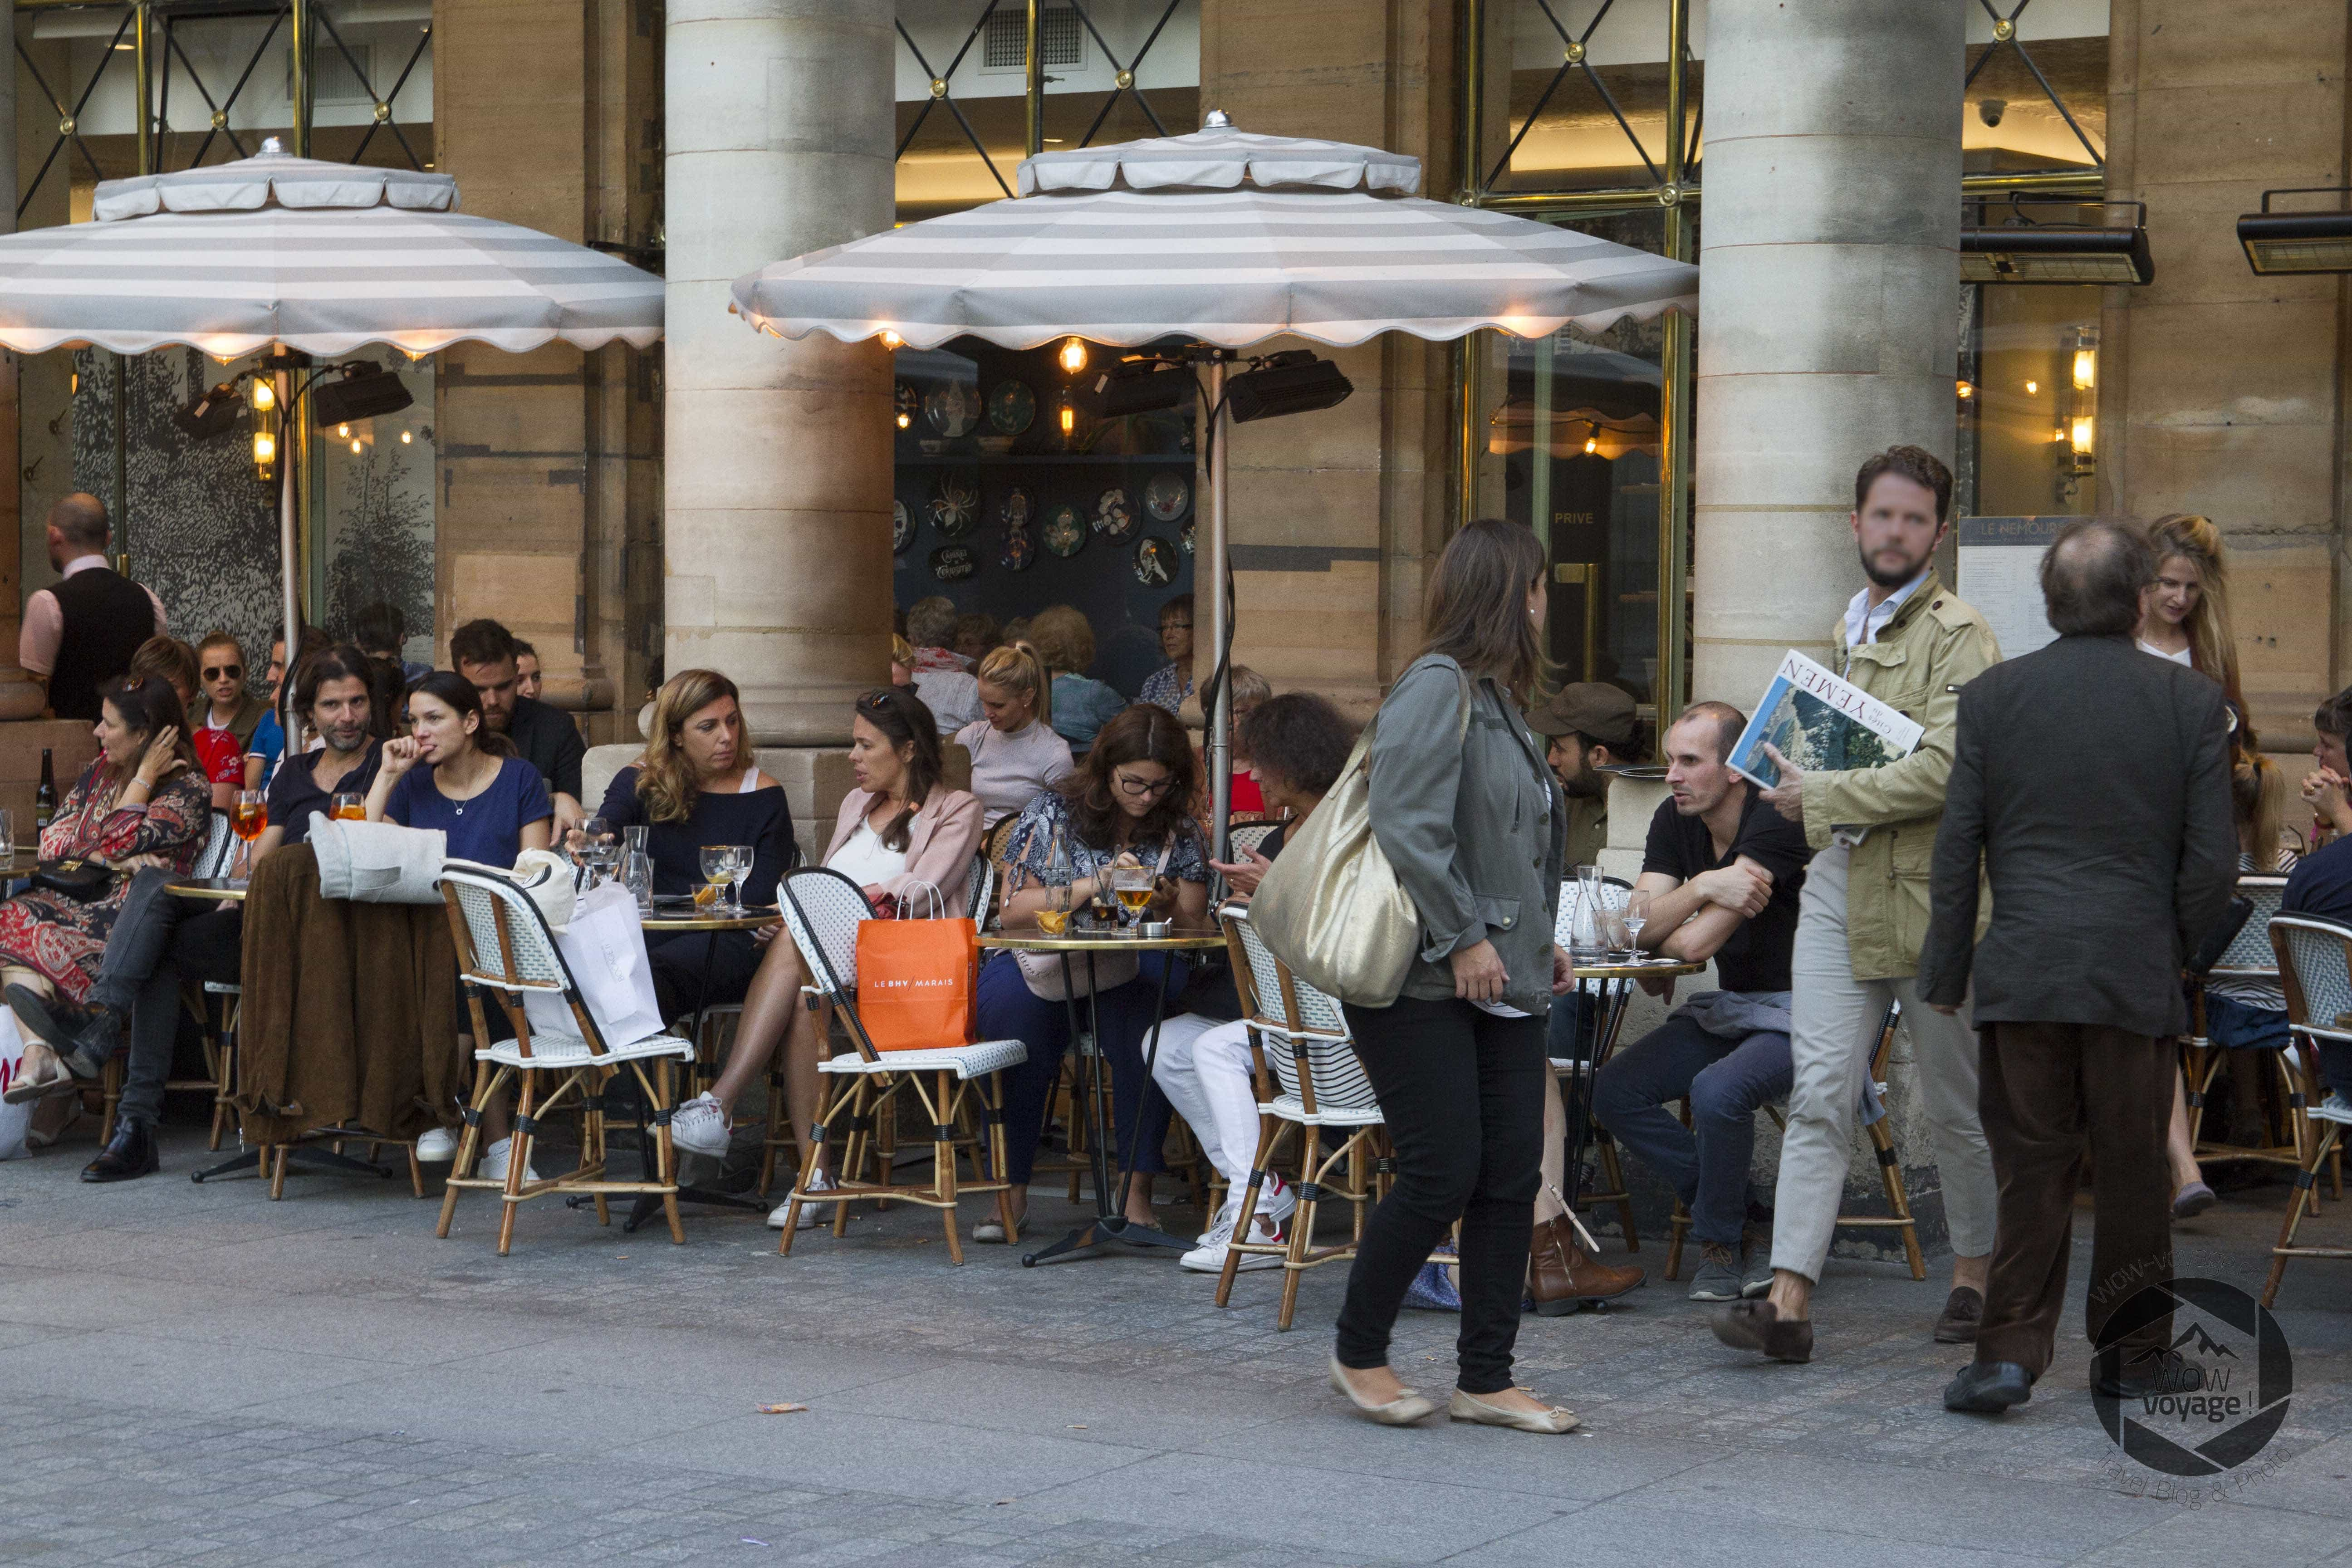 Photo of people eating at the restaurant of the Palais Royal of Paris.